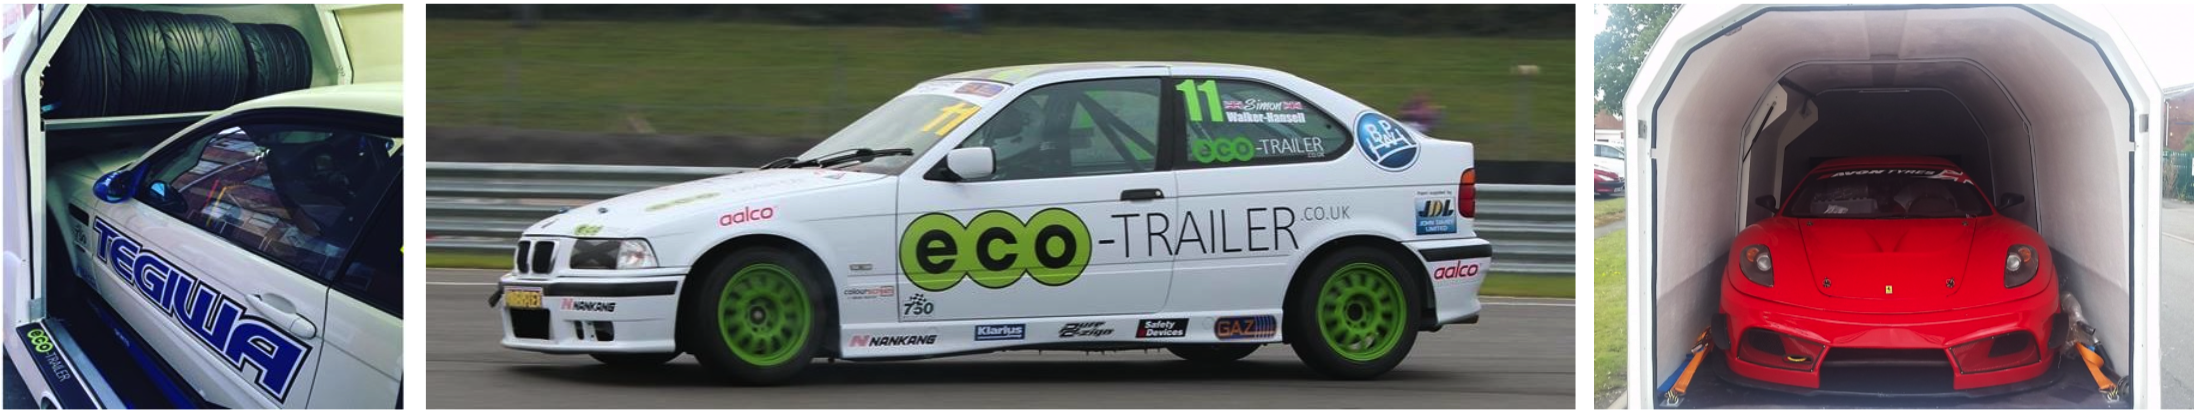 Eco-Trailer racing